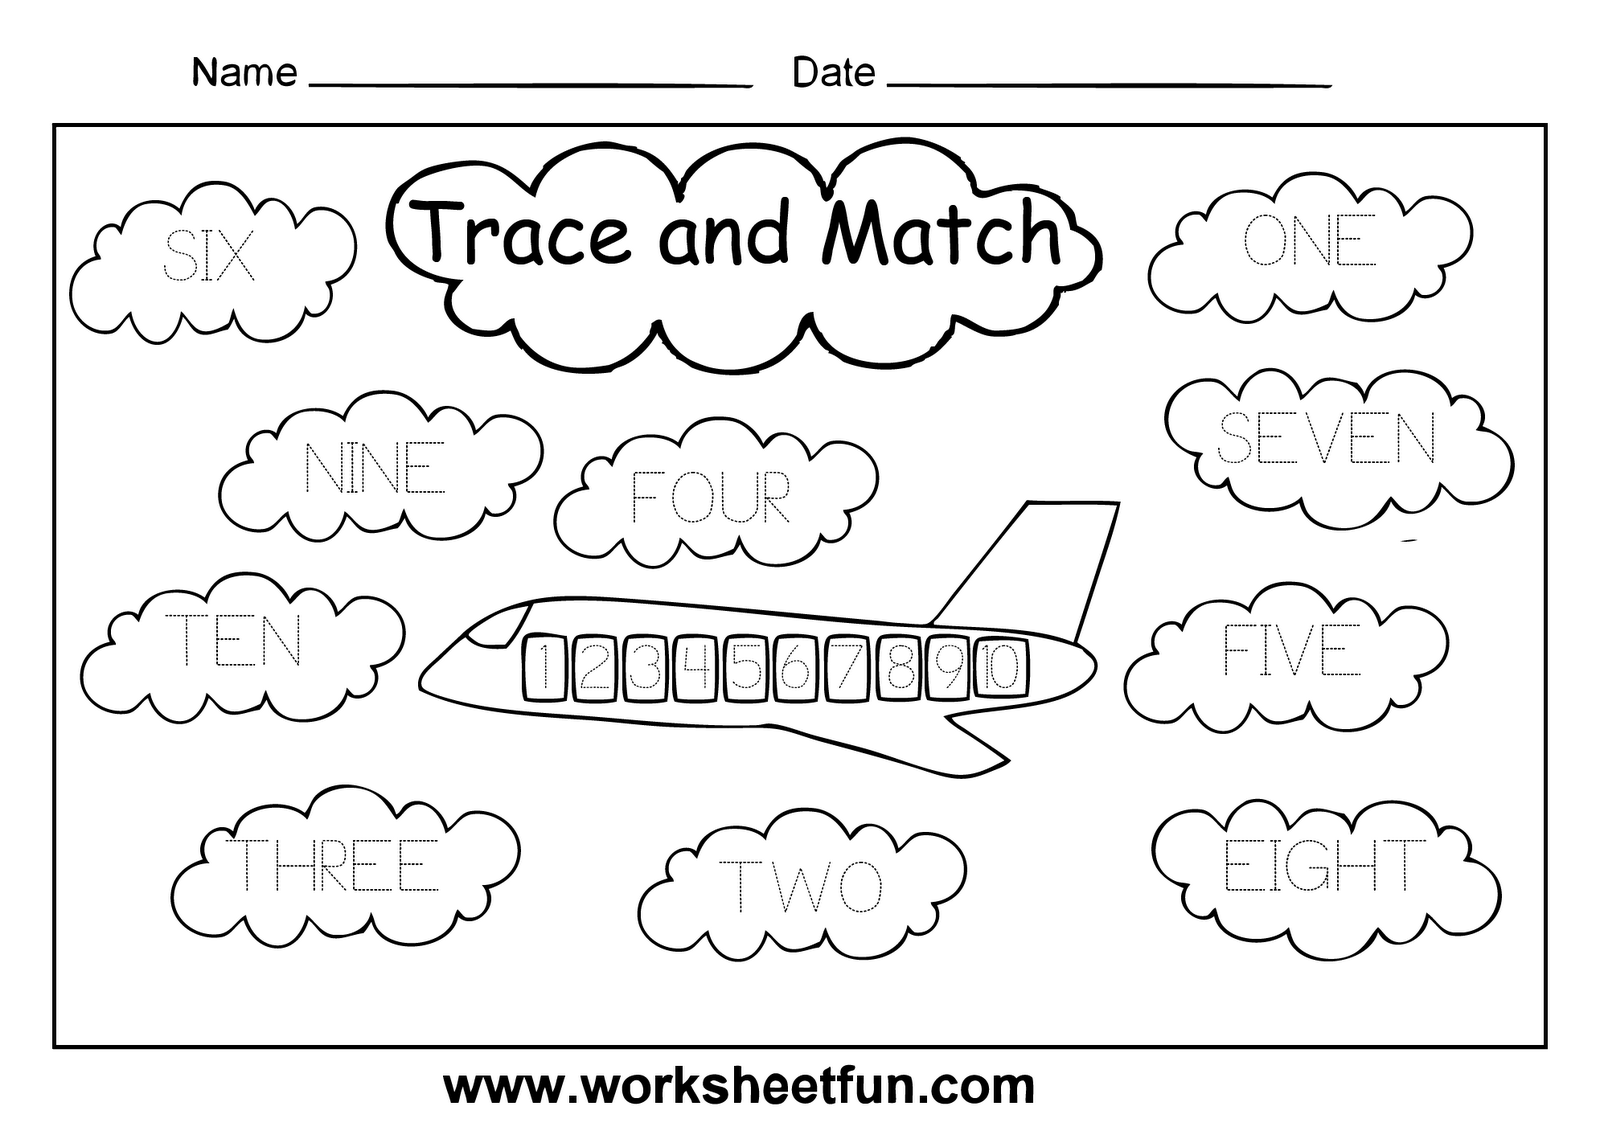 Weirdmailus  Ravishing Worksheet Numbers    Reocurent With Excellent Math Fraction Worksheet Besides Free Rocket Math Worksheets Furthermore Reading Worksheets Th Grade With Cute Sight Word Worksheets St Grade Also Activity Worksheets For Kindergarten In Addition Fun Science Worksheets For Middle School And Copy A Worksheet To Another Workbook As Well As Free Printable Science Worksheets For Rd Grade Additionally Letter C Worksheets For Kindergarten From Reocurentcom With Weirdmailus  Excellent Worksheet Numbers    Reocurent With Cute Math Fraction Worksheet Besides Free Rocket Math Worksheets Furthermore Reading Worksheets Th Grade And Ravishing Sight Word Worksheets St Grade Also Activity Worksheets For Kindergarten In Addition Fun Science Worksheets For Middle School From Reocurentcom